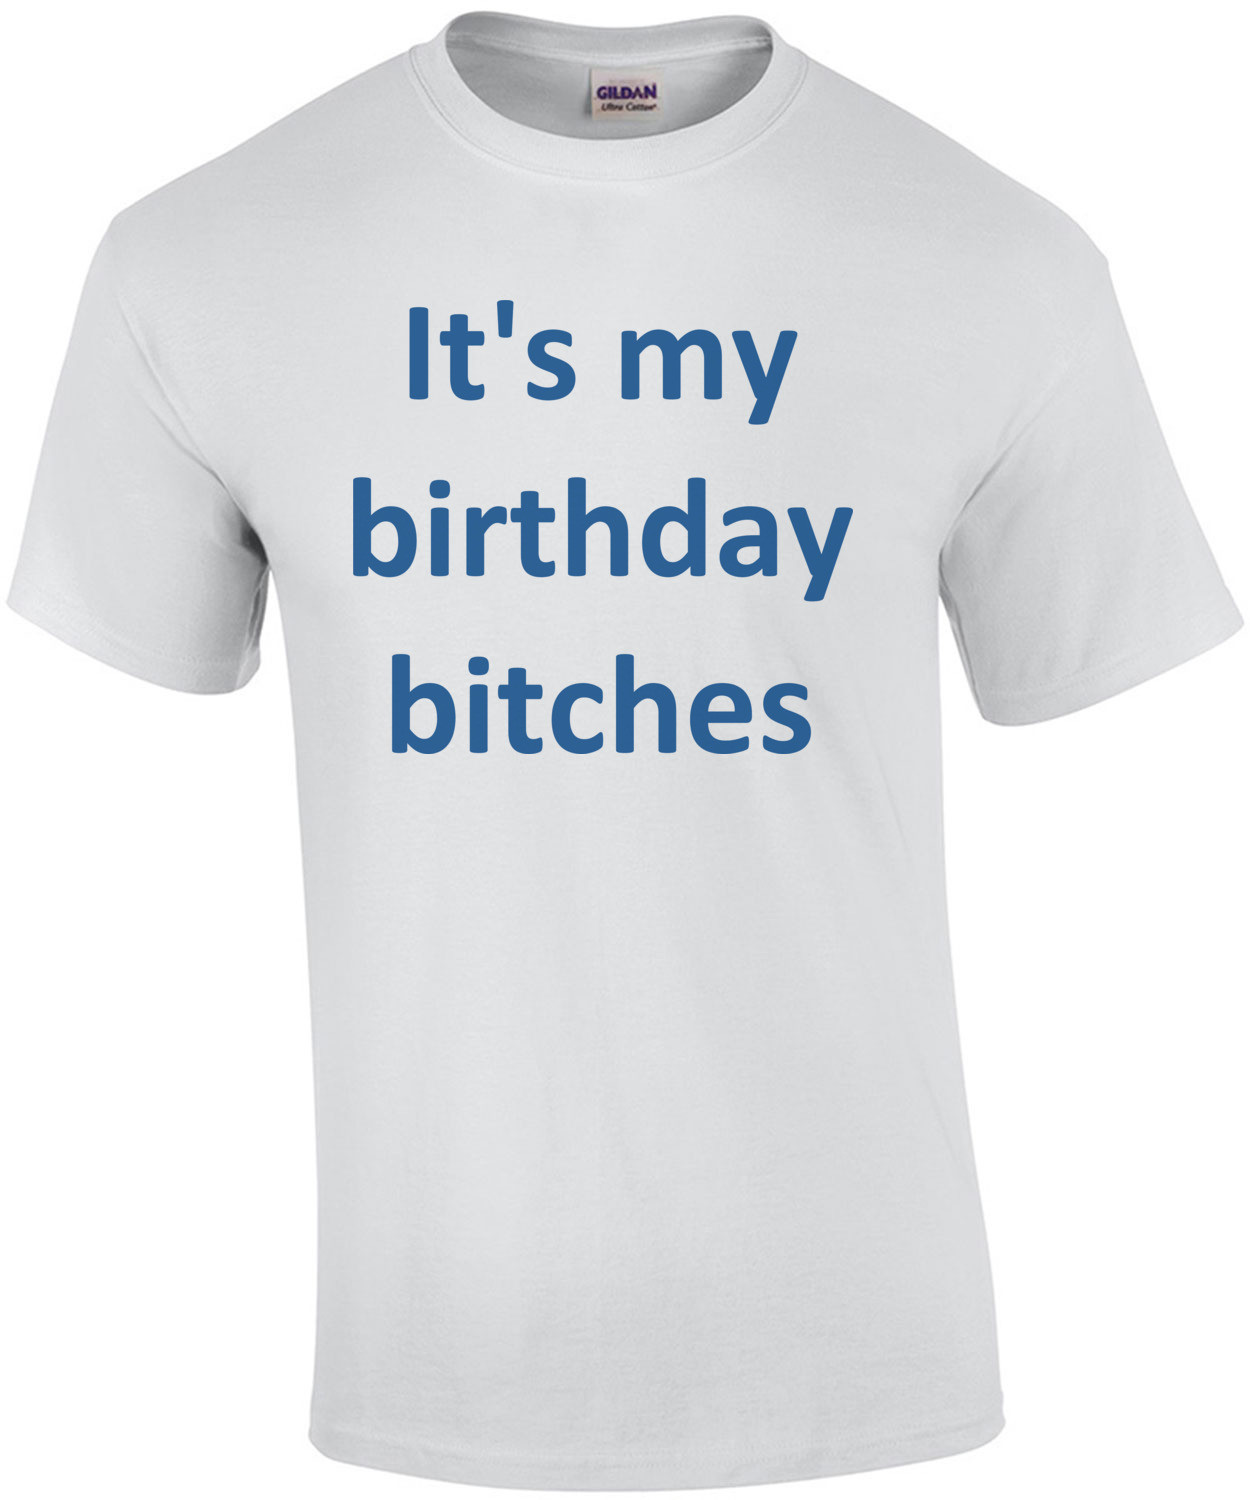 It's my birthday bitches Birthday Shirt